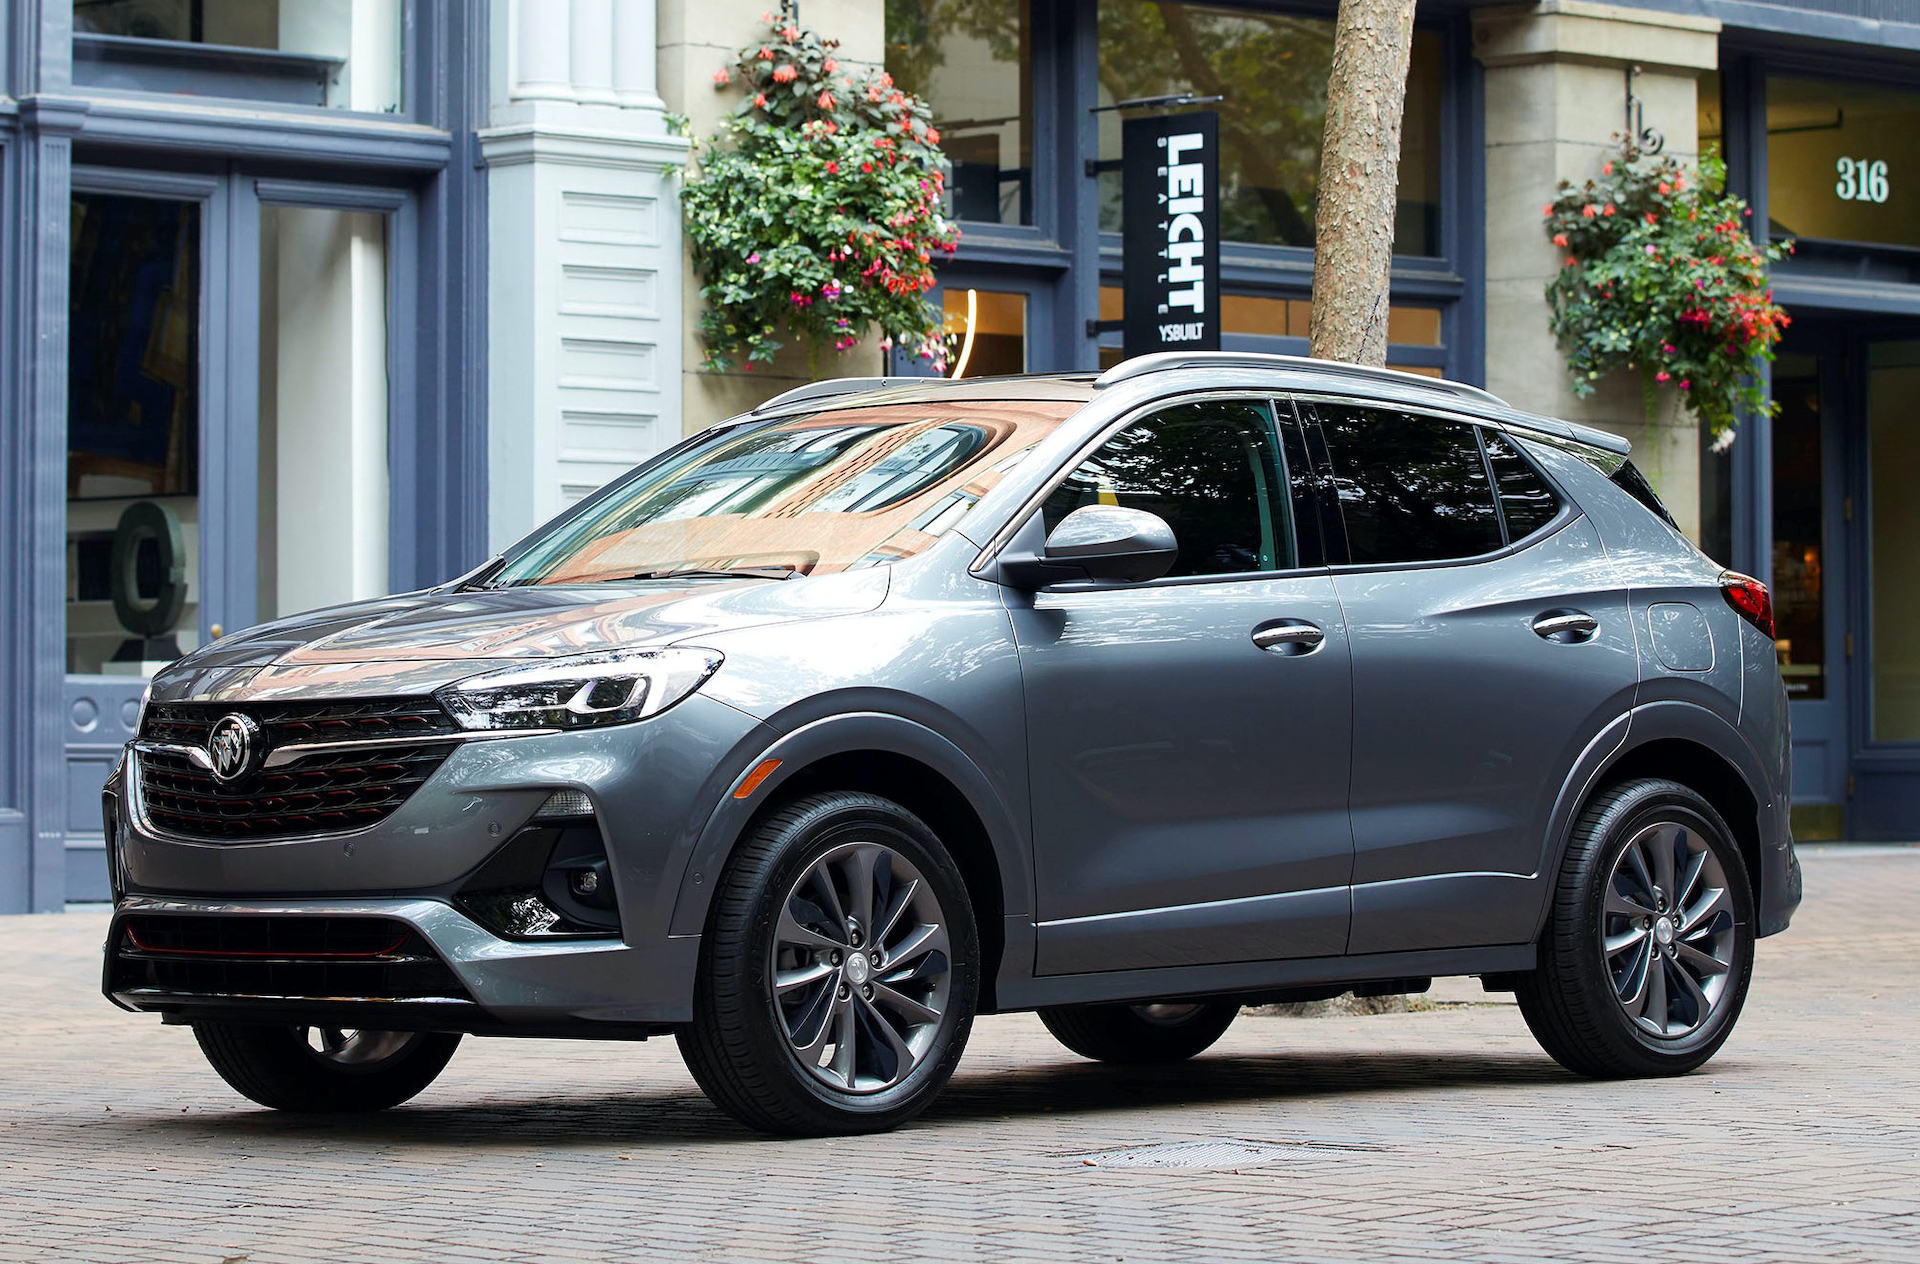 2021 Buick Encore Review, Ratings, Specs, Prices, And Photos New 2021 Buick Encore Gx Build, Curb Weight, Cargo Space